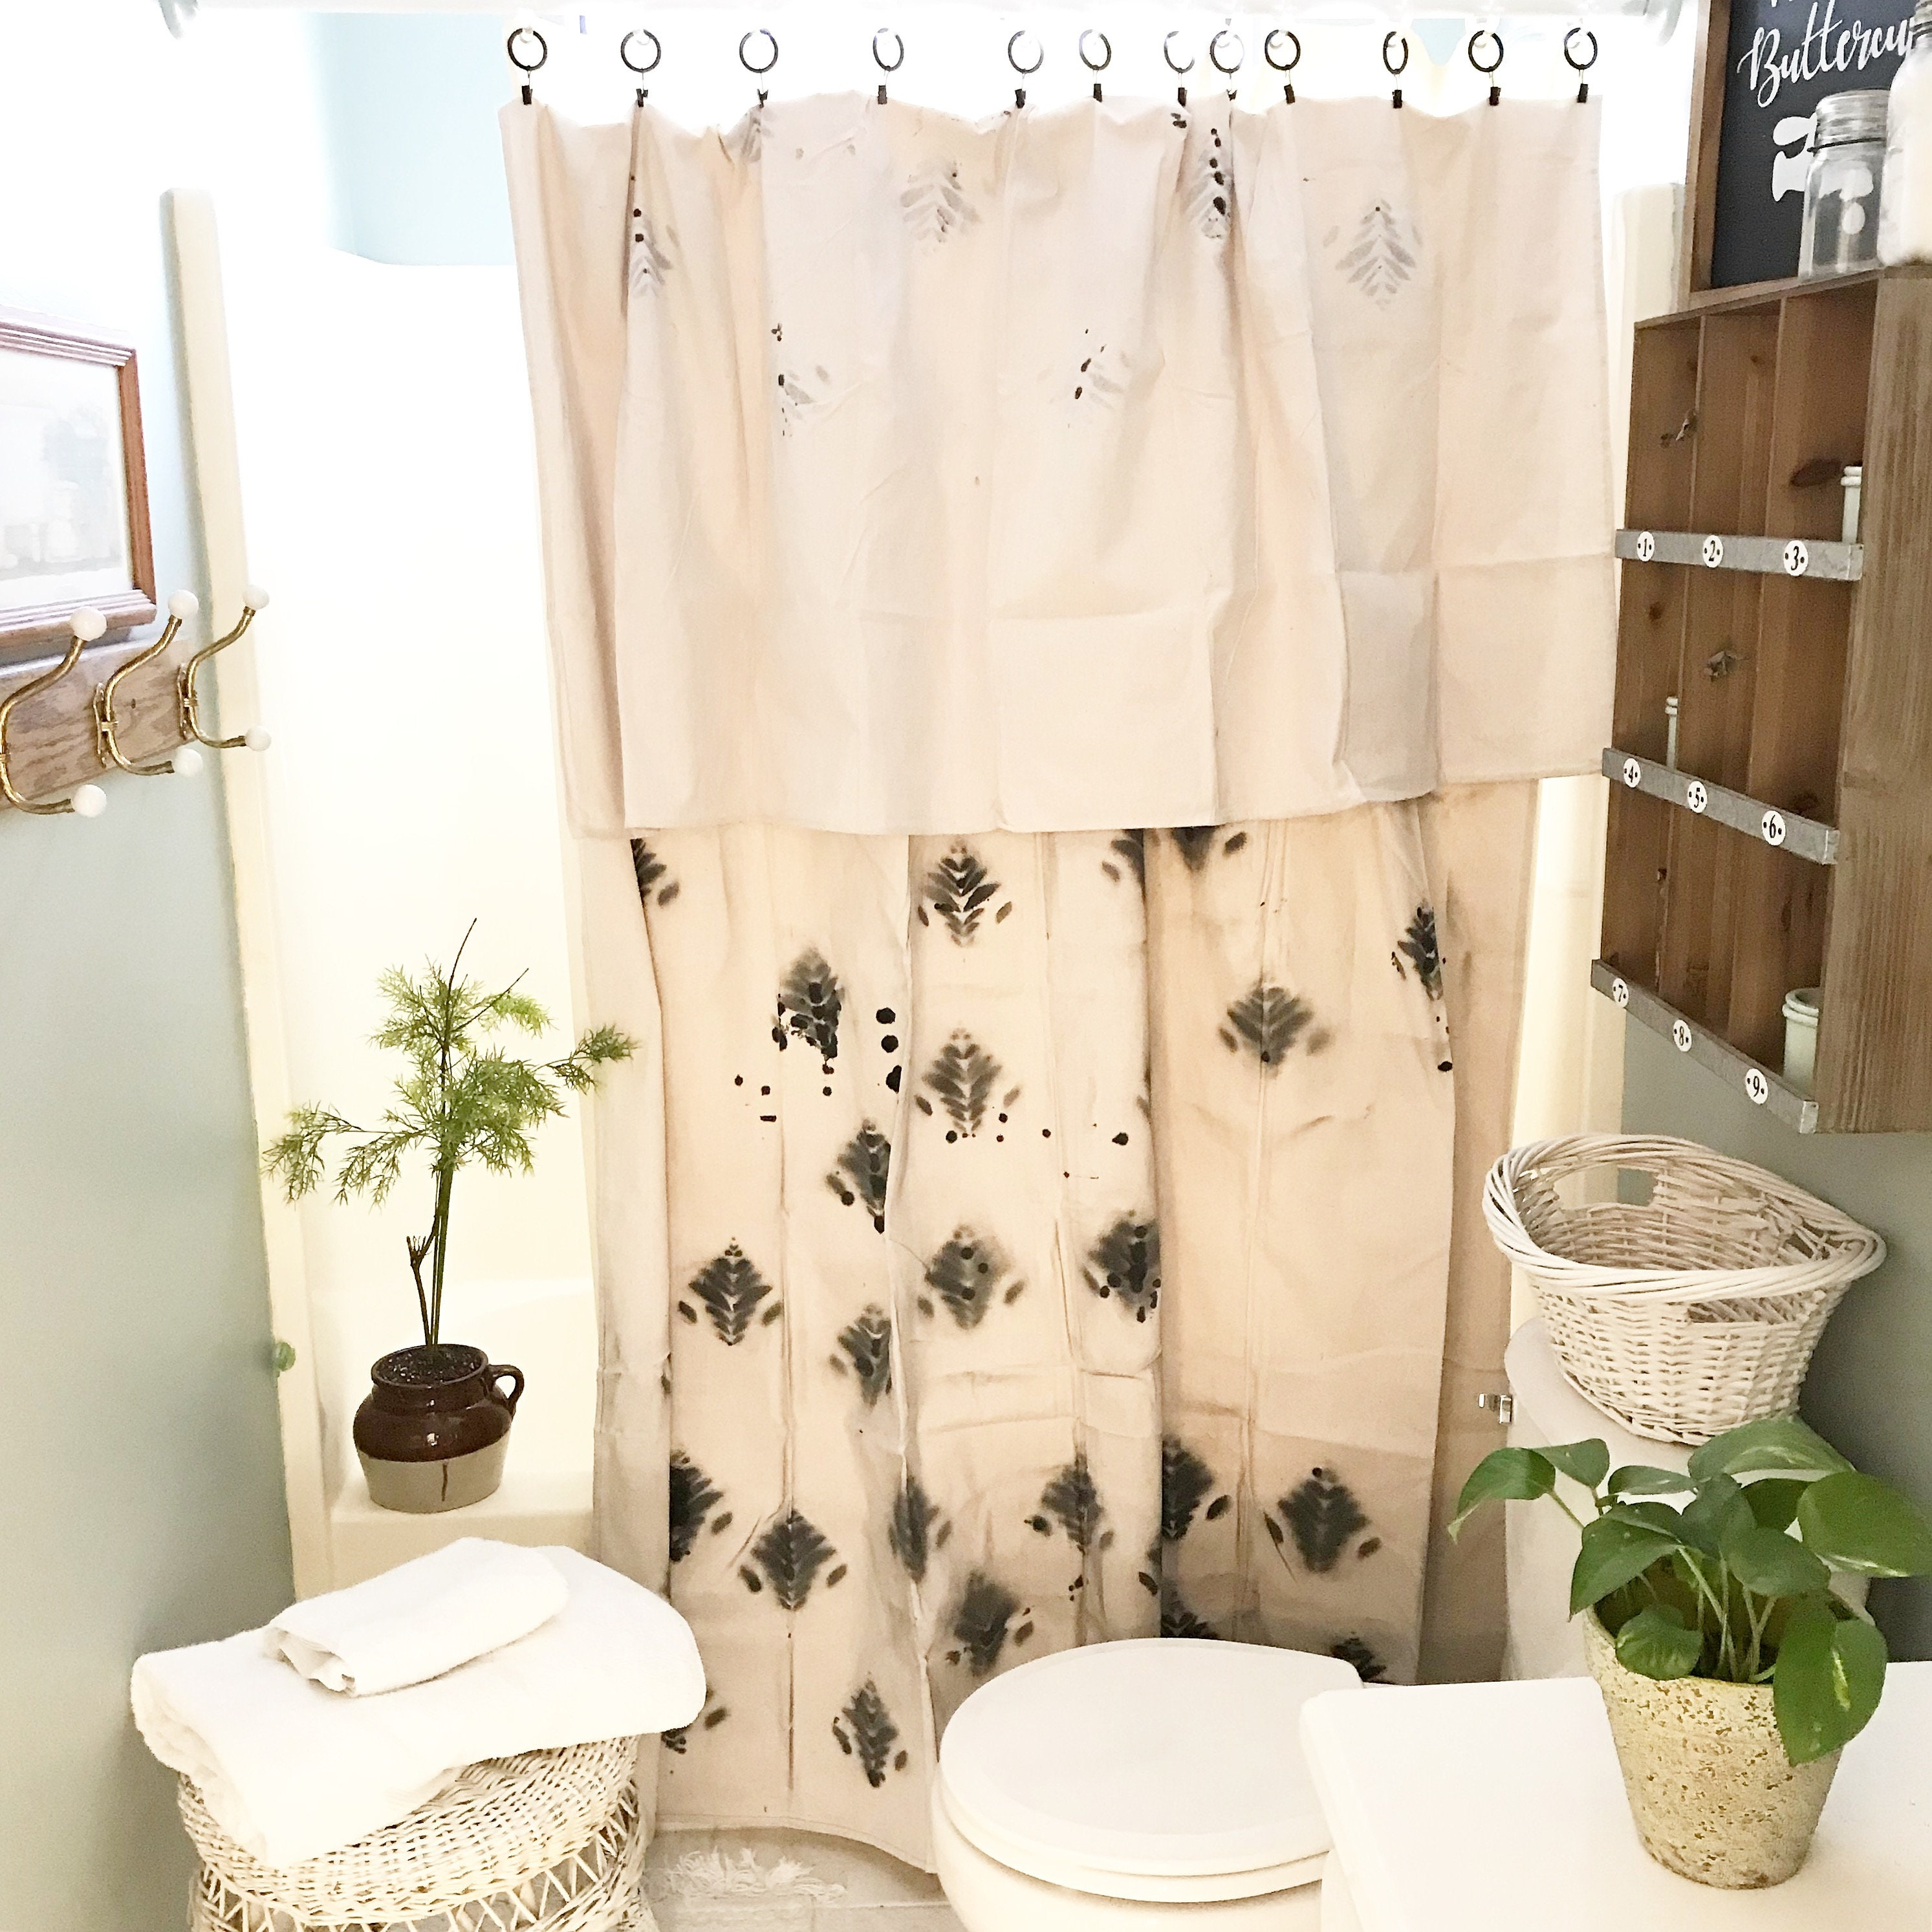 Drop Cloth Shower Curtain With Clip Rings